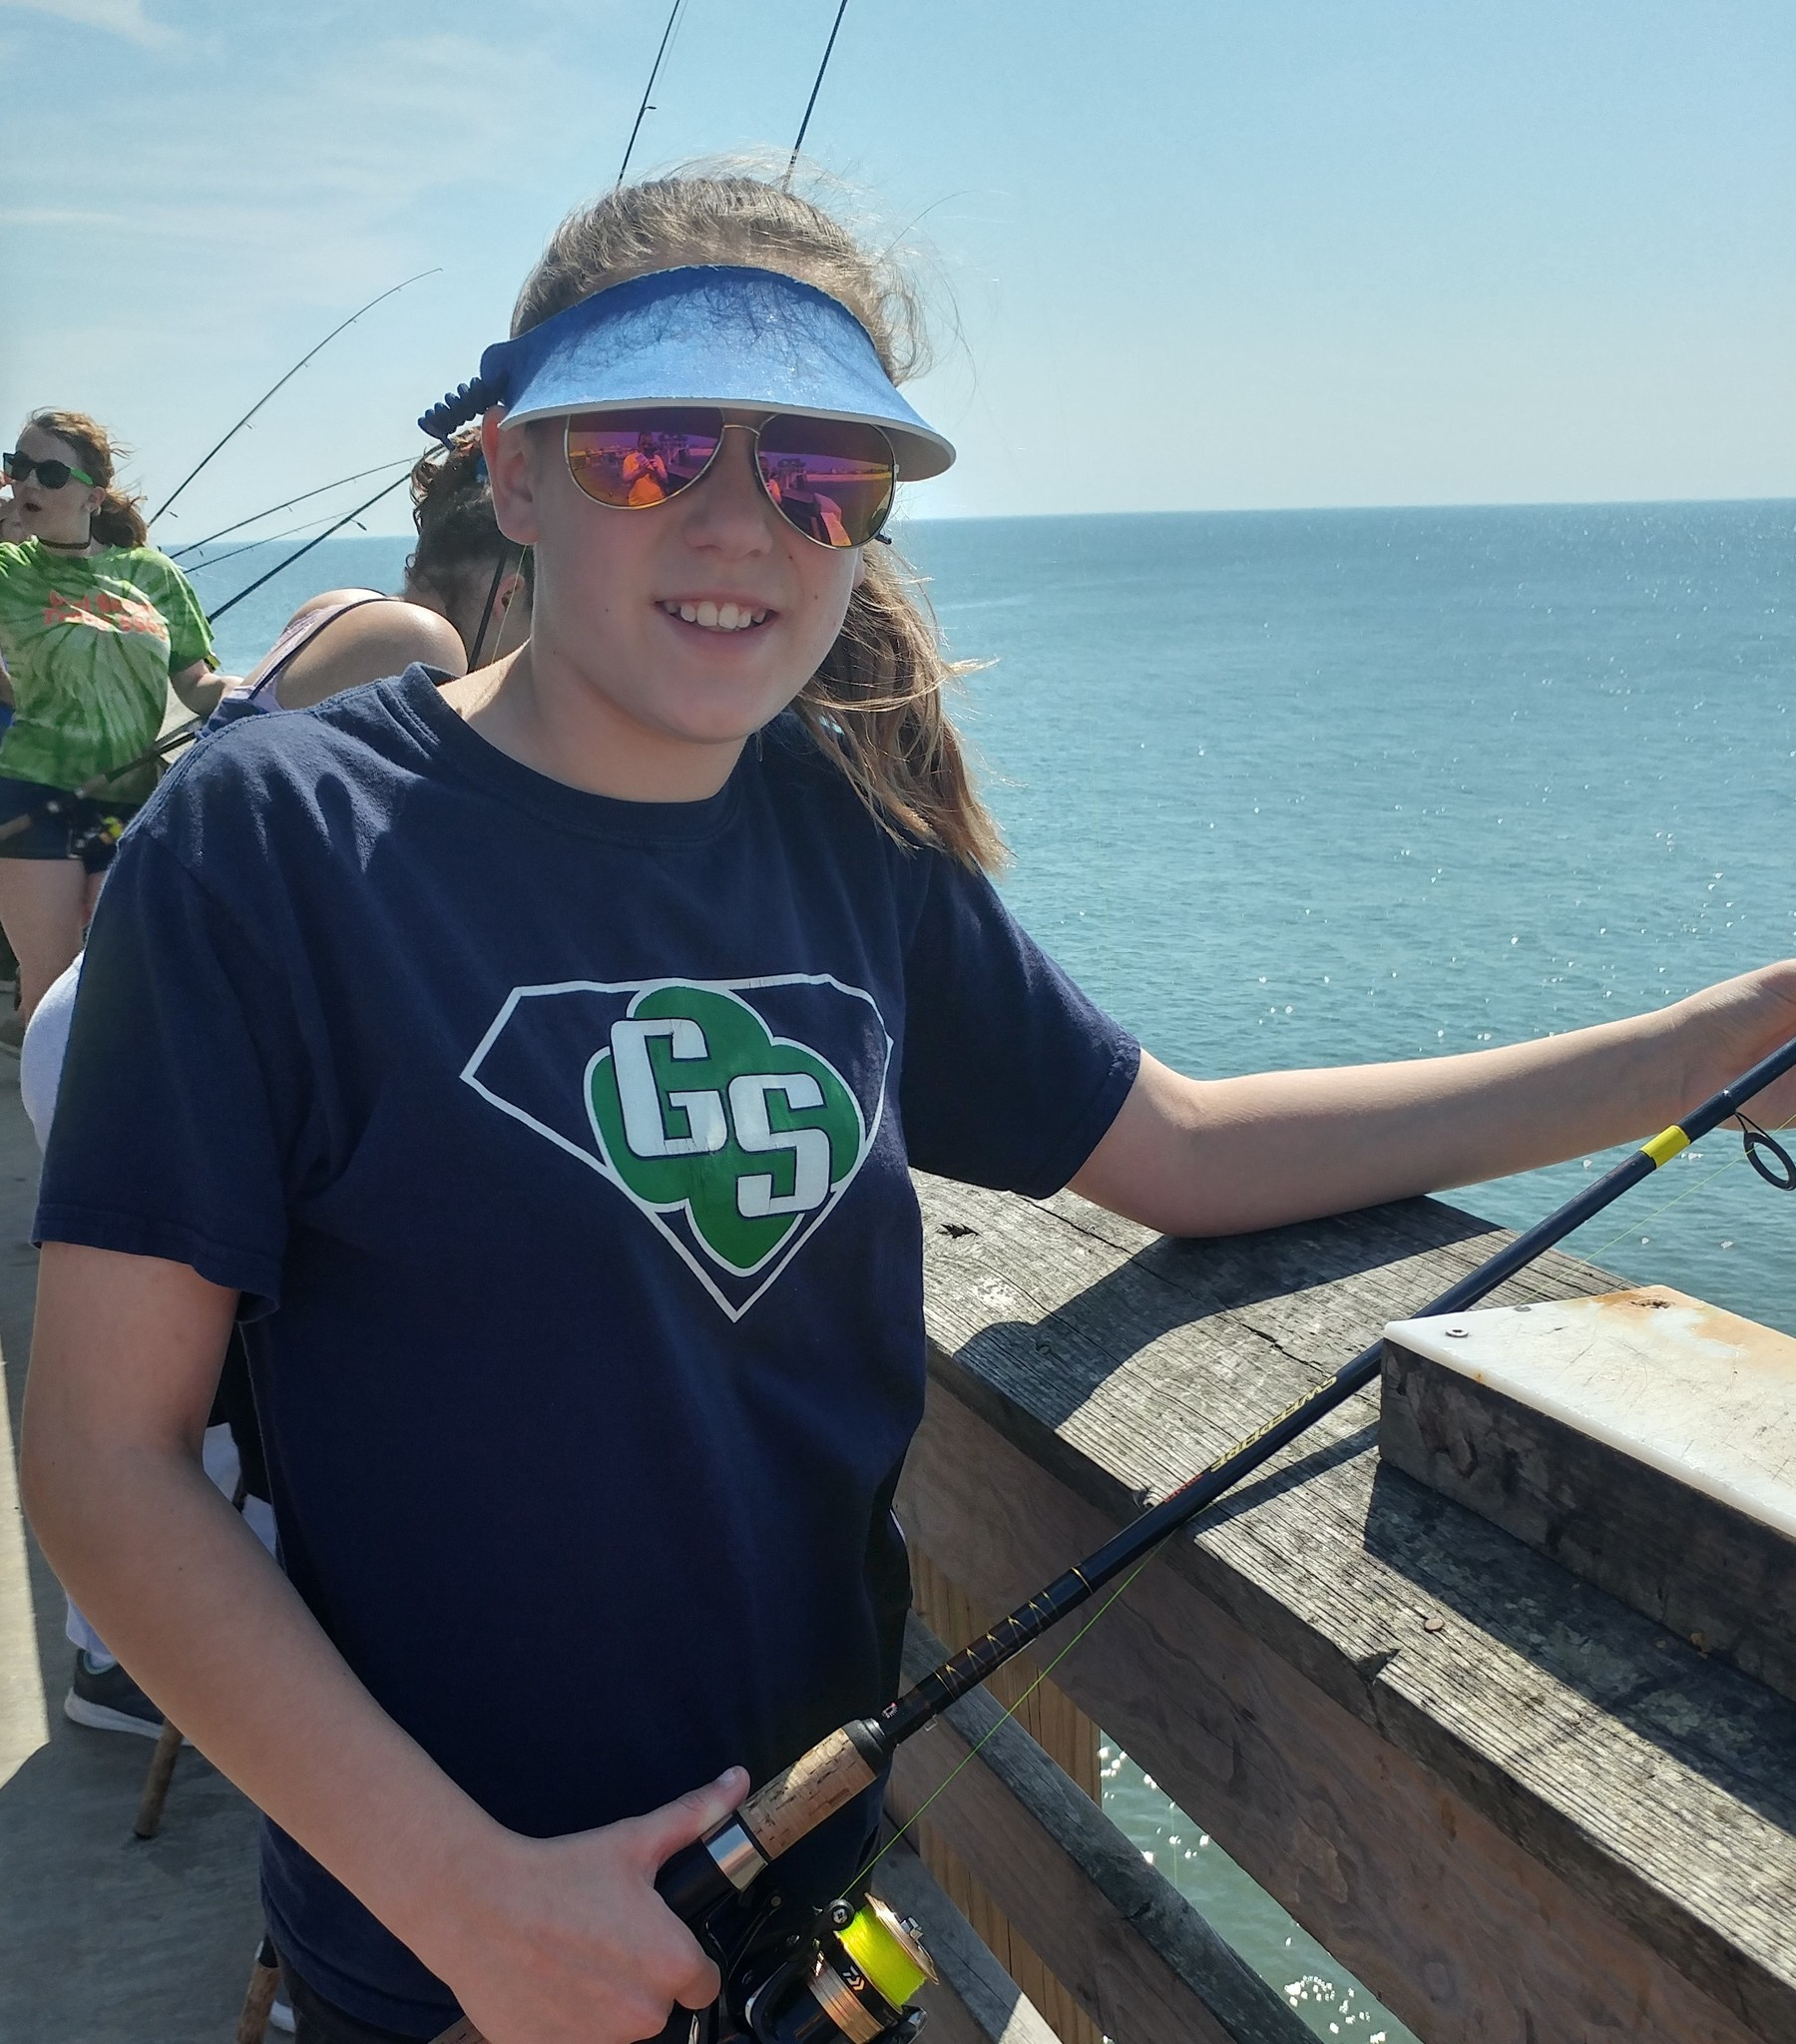 nags head girls Girl scouts attend stem fun day in nags head  engineering and math event at jennette's pier in nags head the day was designed to teach girls about marine life, ecosystems and energy through .